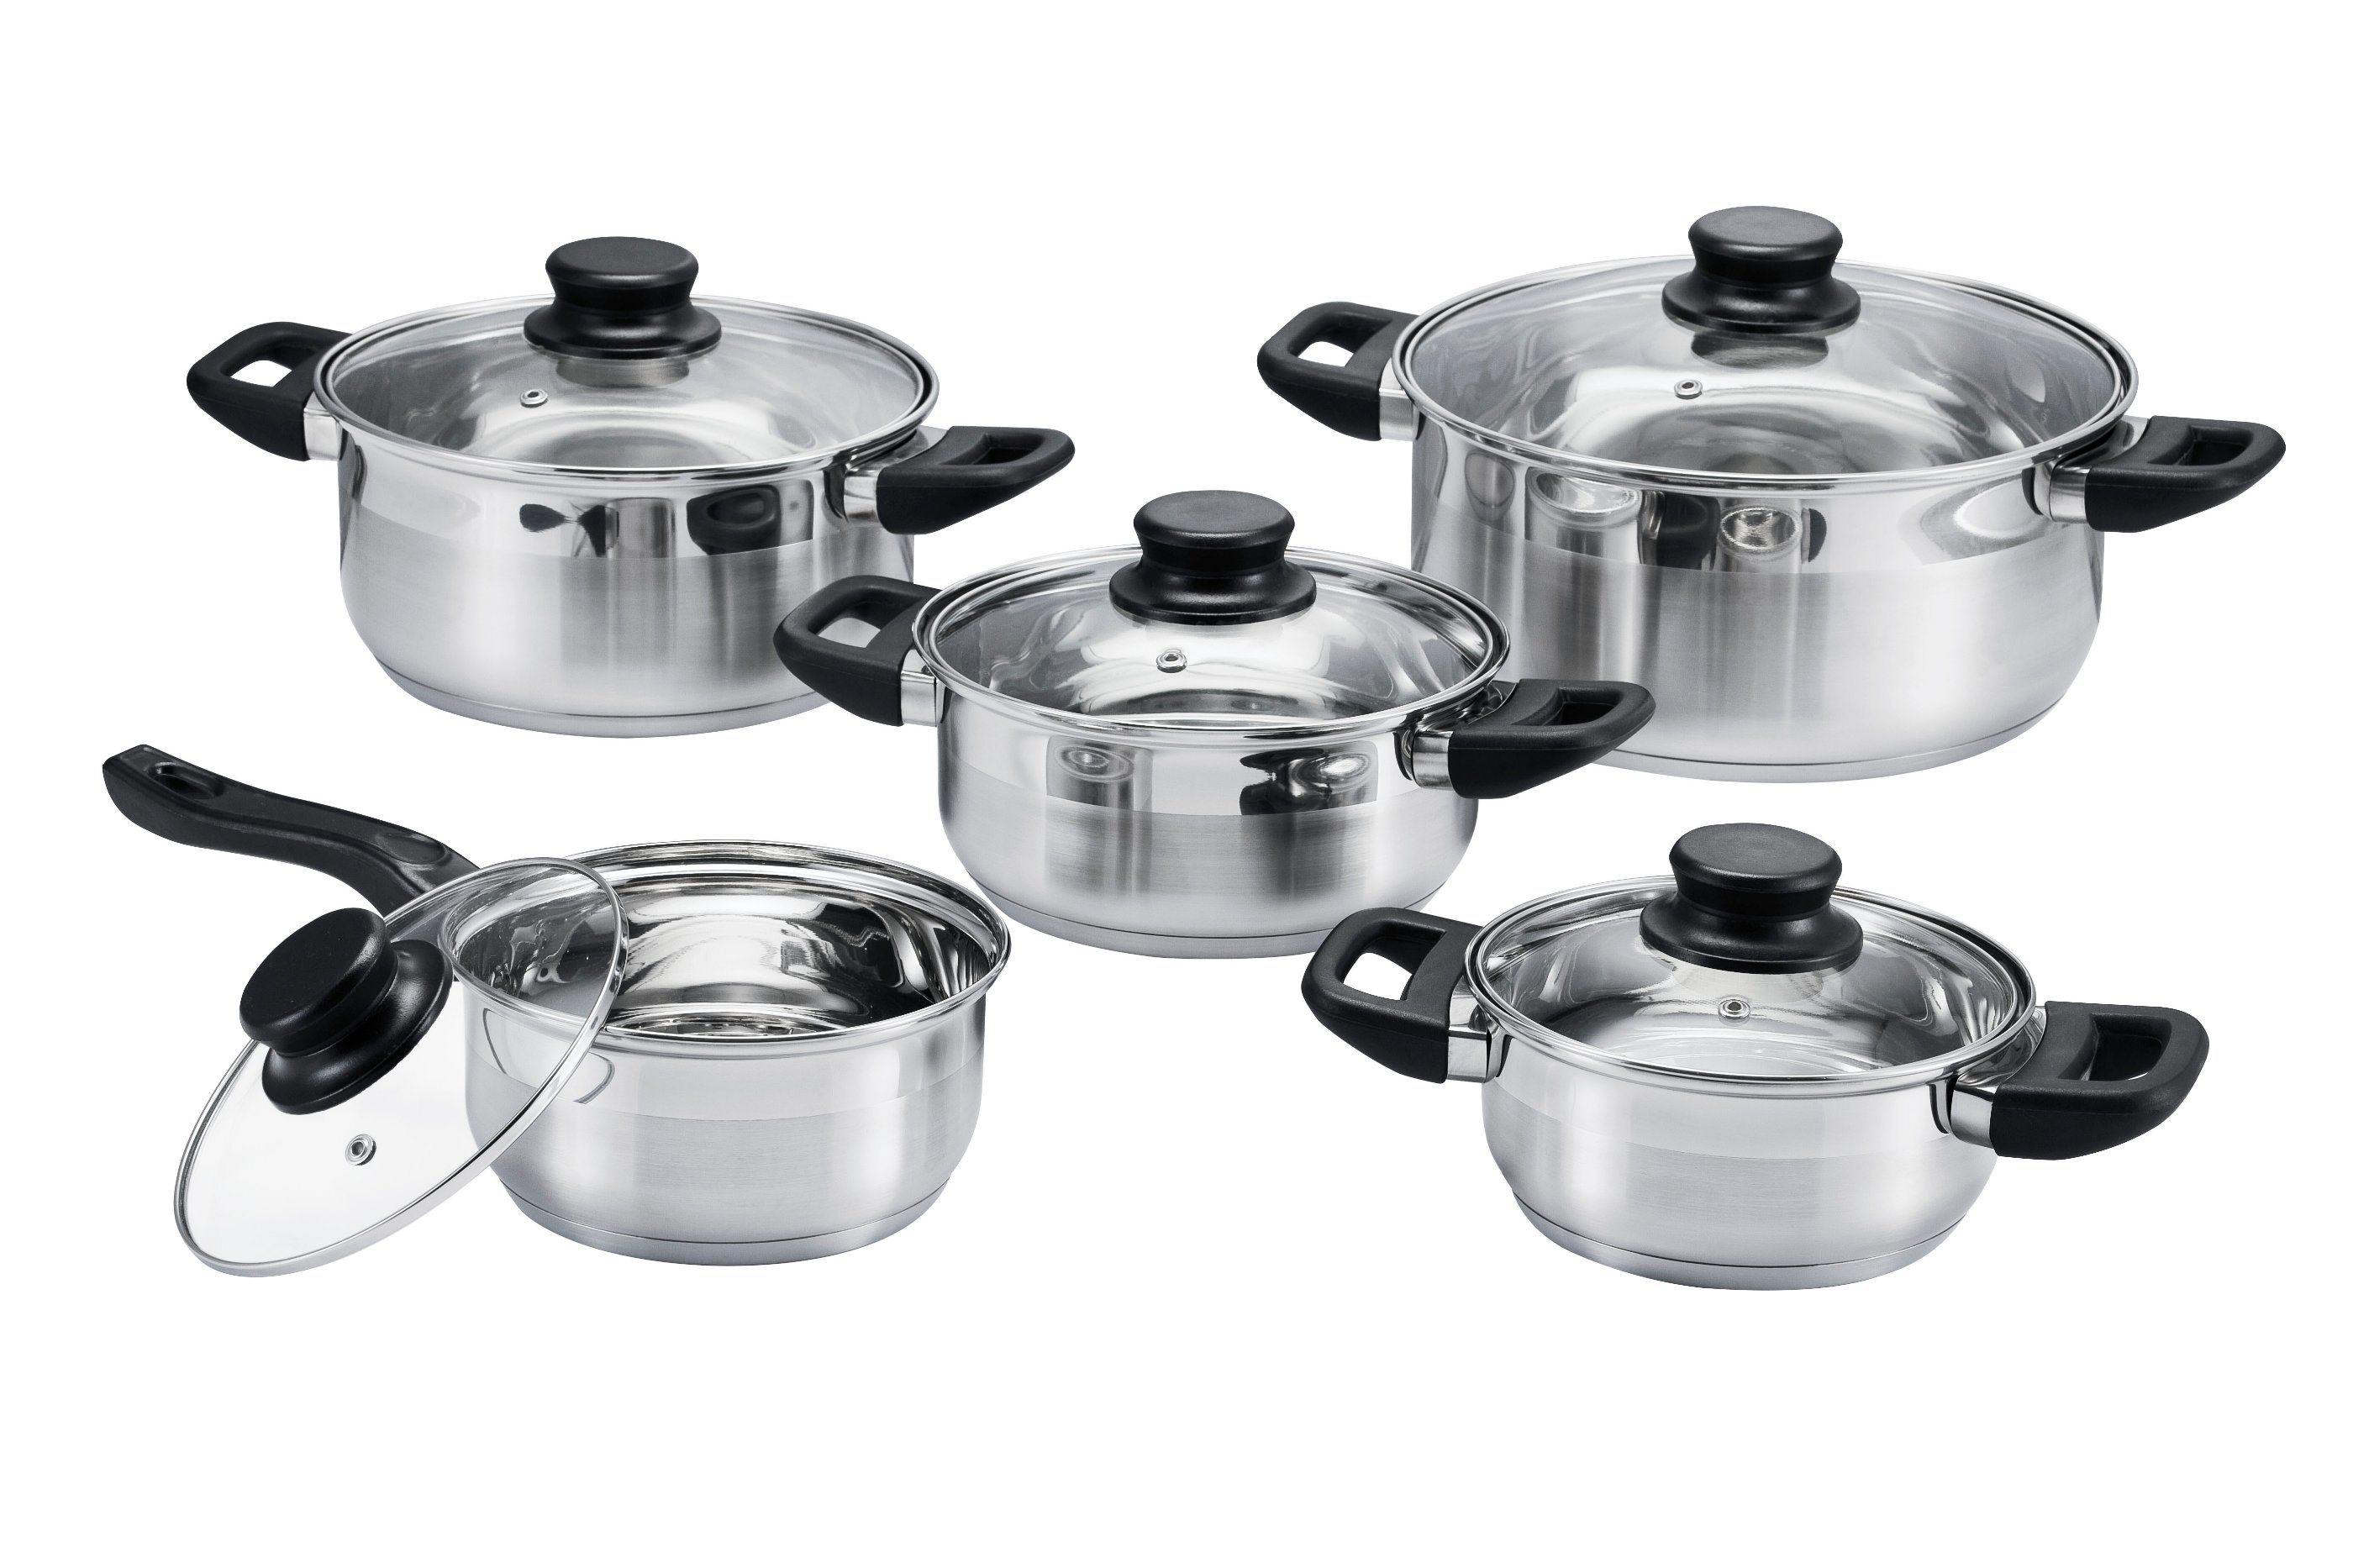 10 PCS Bakelite Suit Cookware Set